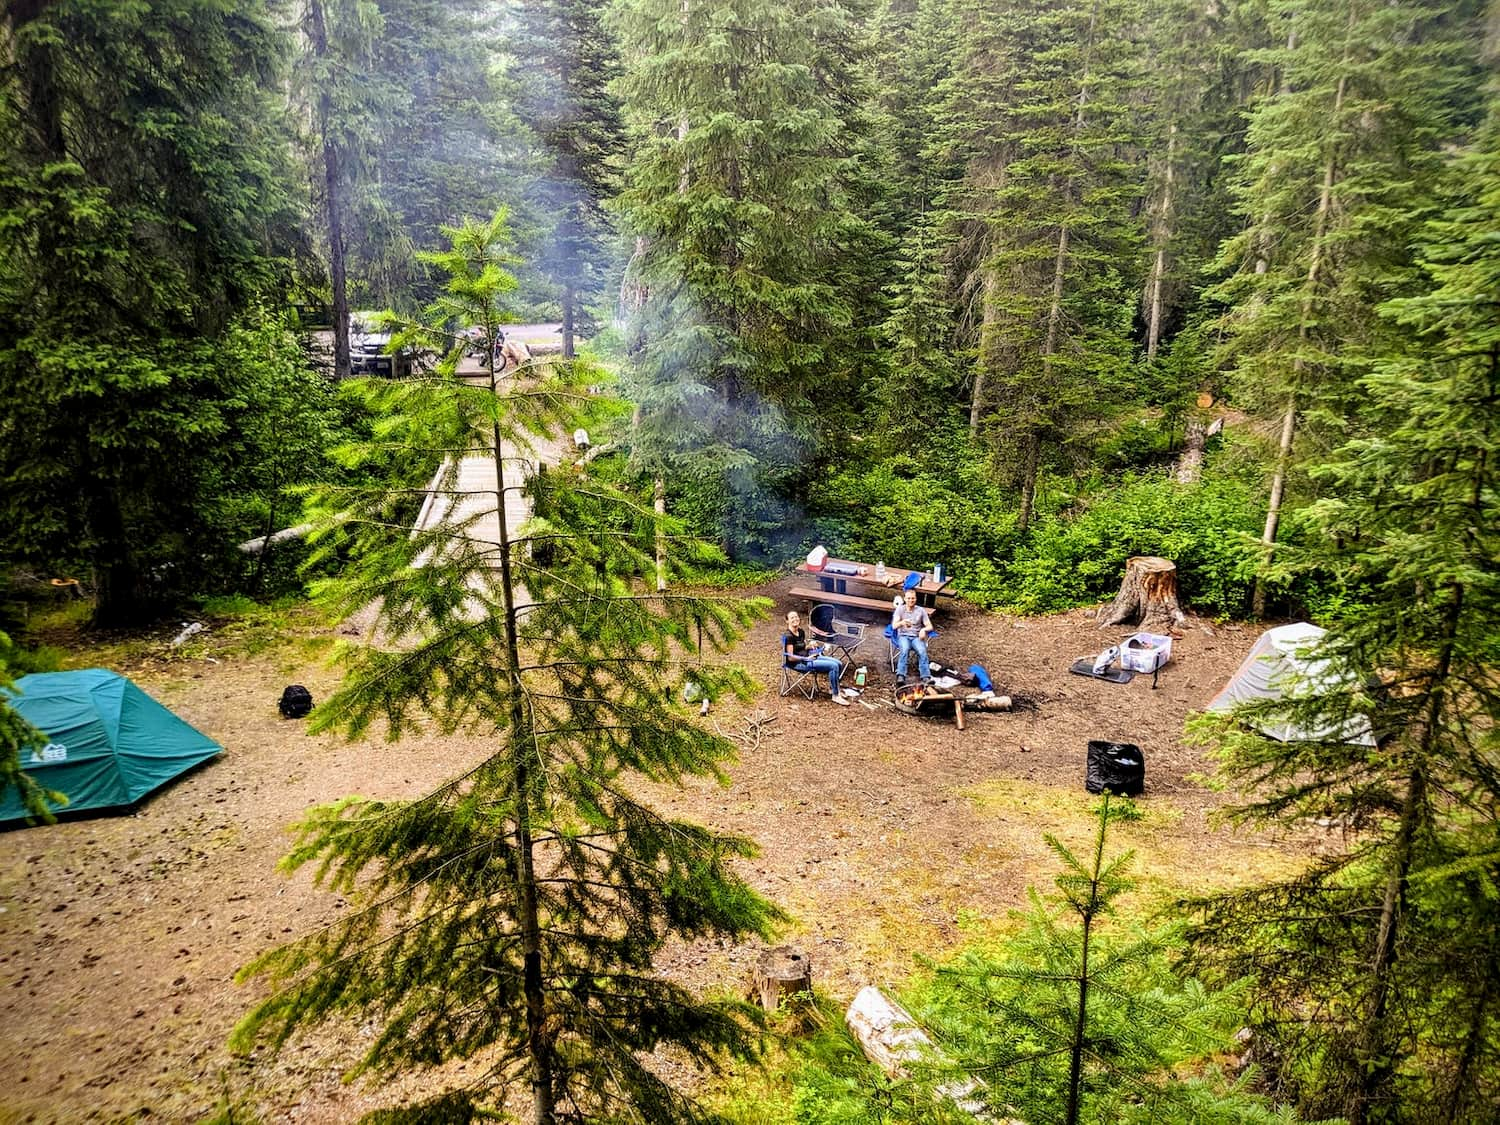 overview shot of campsite